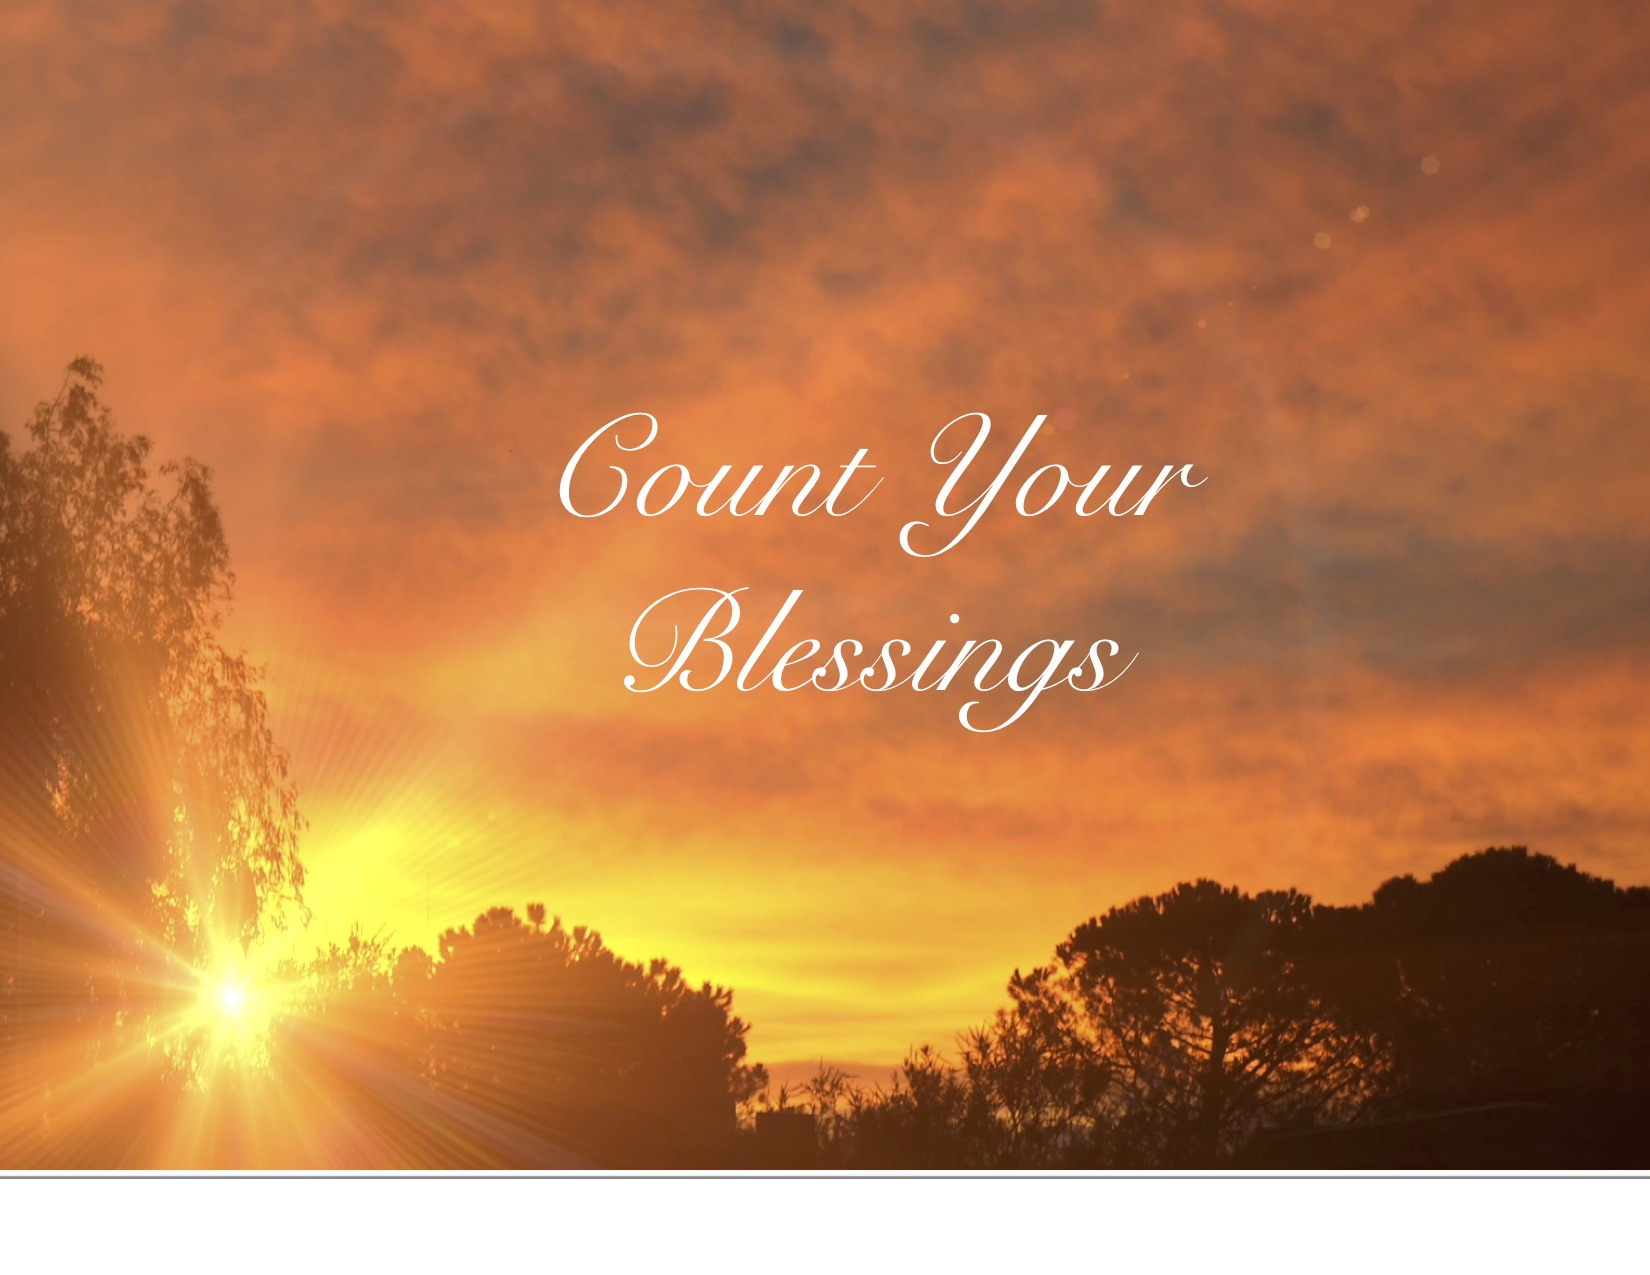 Count Your Blessings – Small Church Connections